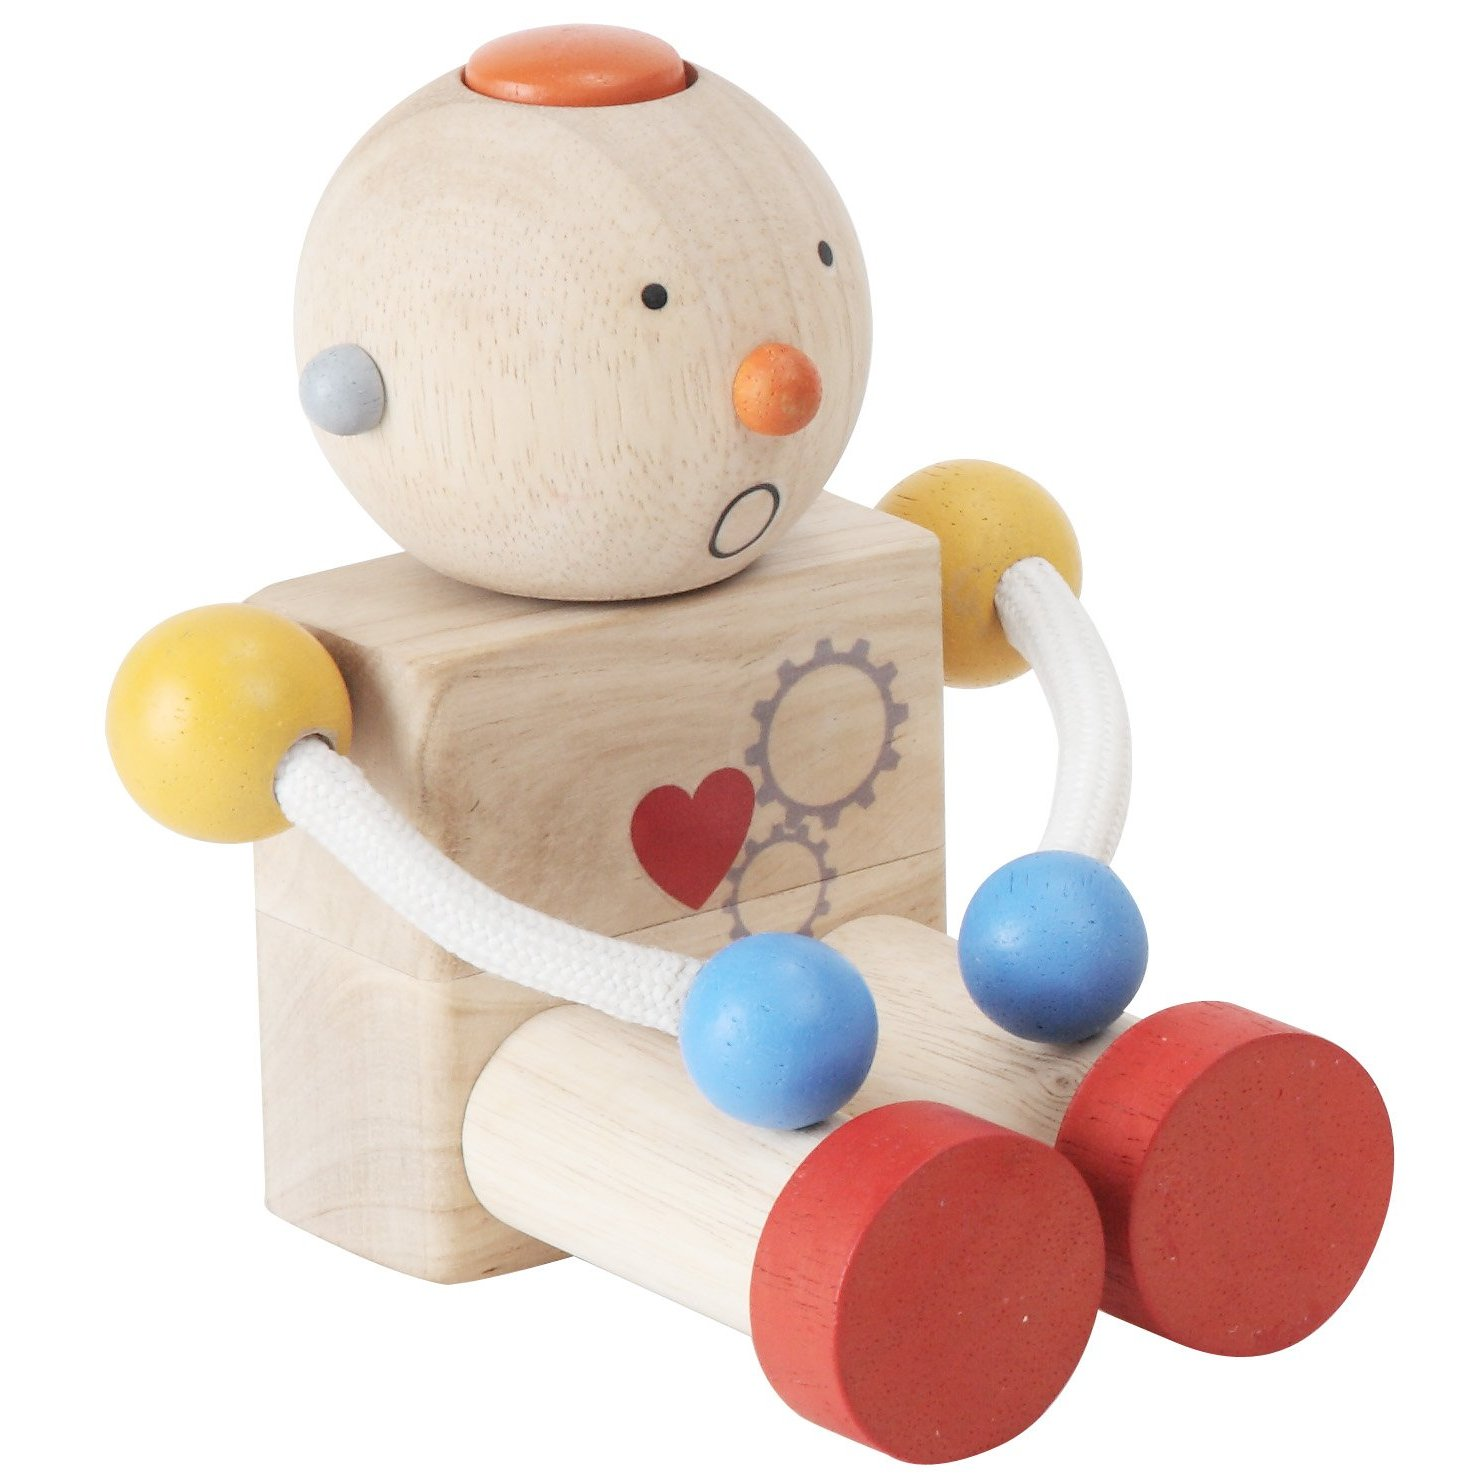 Toys For Autistic Children : Autism toy is one of s best toys